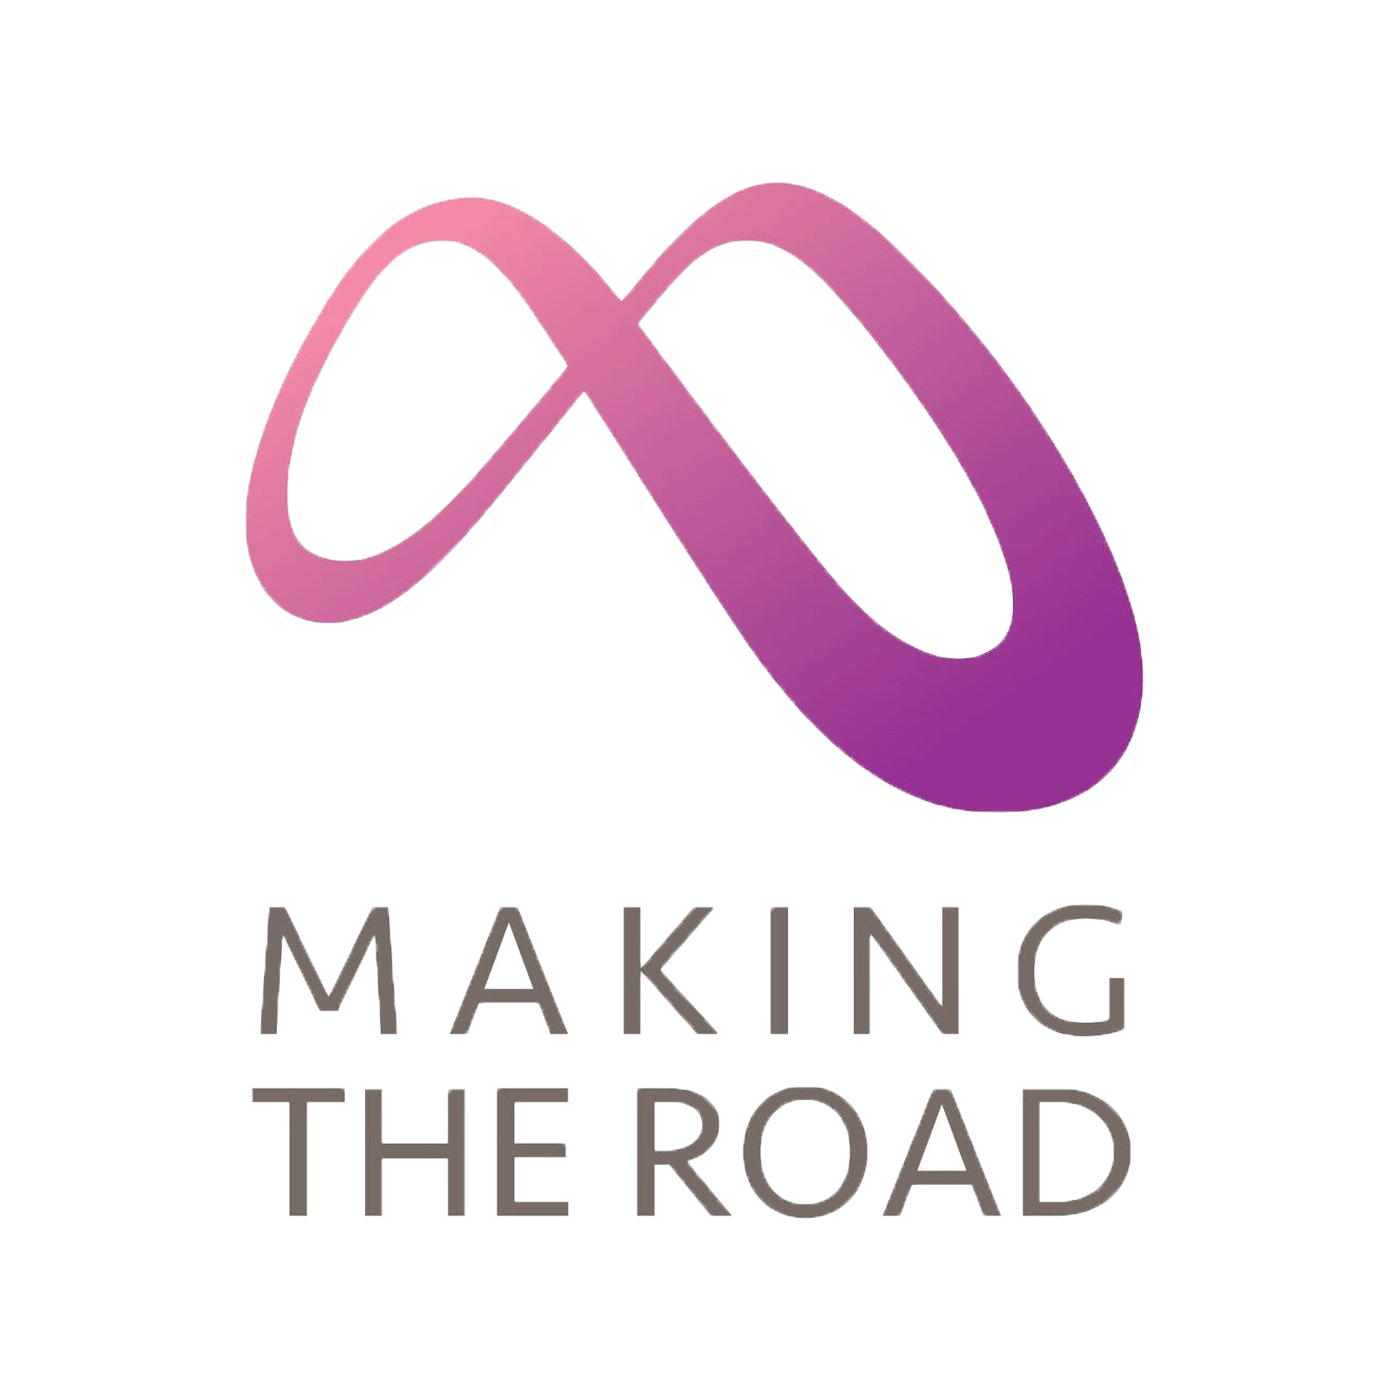 MAKING THE ROAD